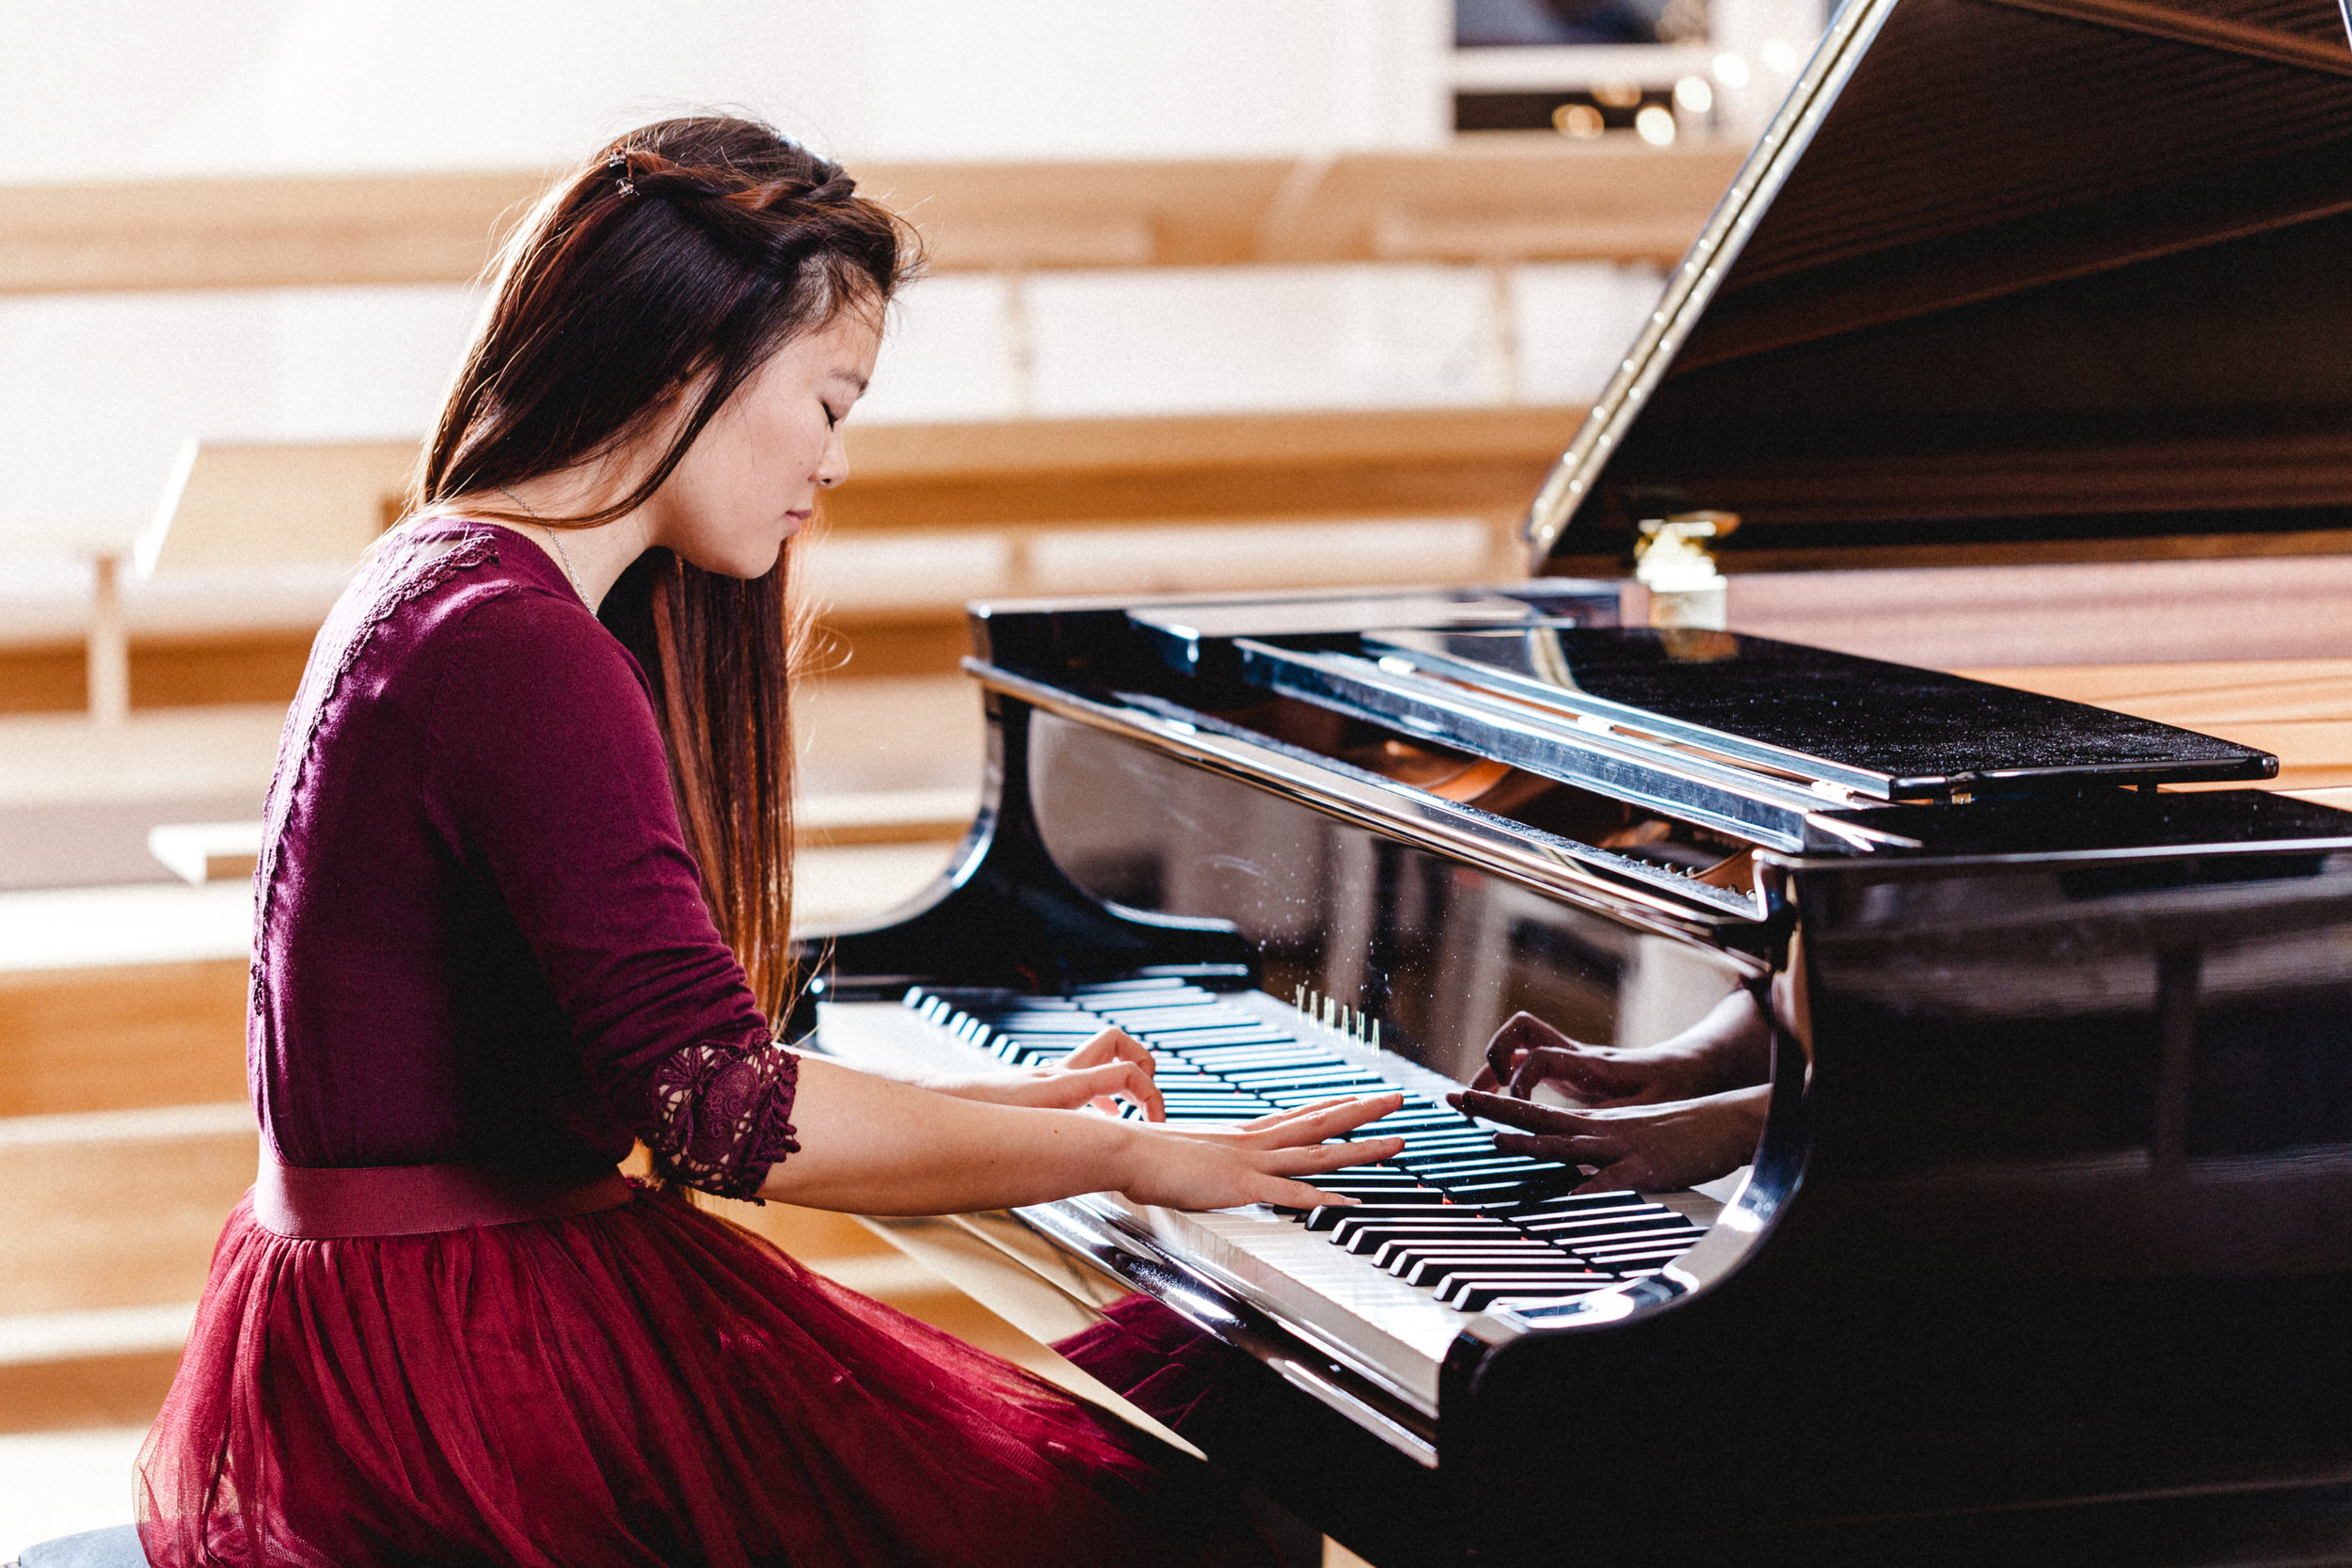 -  Anke Pan was born 31st March 1993 in Mülheim an der Ruhr (Germany) and started to play the piano at the age of 4, with 7 she performed her first piano concerto with orchestra. She was accepted to the Pre-College in Cologne soon and studied with Prof. Pierre-Laurent Aimard and later with Prof. Ilja Scheps, continuing her musical development and artistic maturing. Since then she has been awarded many grants and performed in international media. She received first prizes at several international piano competitions, including the Steinway-Klavierspiel-Wettbewerb in Hamburg and the Rotary-Wettbewerb in Essen and the